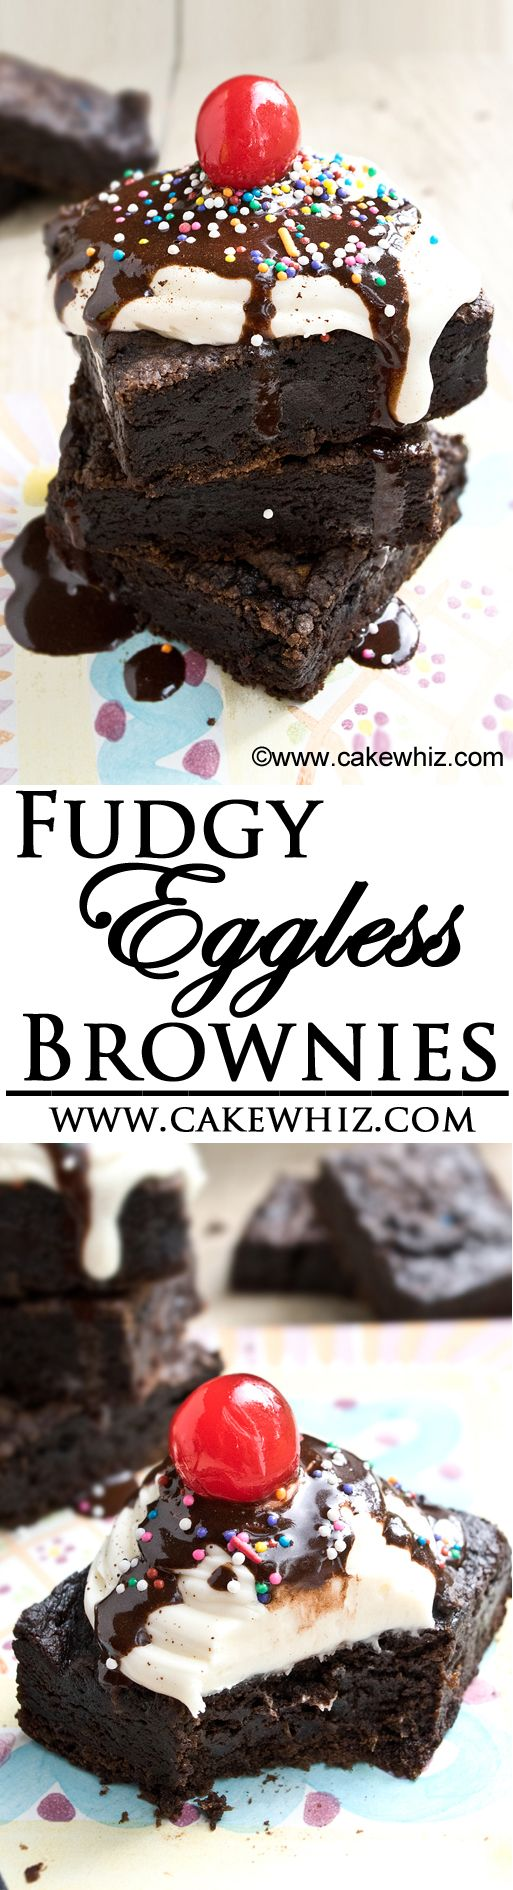 These FUDGY EGGLESS BROWNIES are made with healthy ingredients that are actually good for you. Stack them up and top it off with ice cream and syrup and it's pure bliss. Hard to believe there are no eggs in this recipe! {Ad} From cakewhiz.com